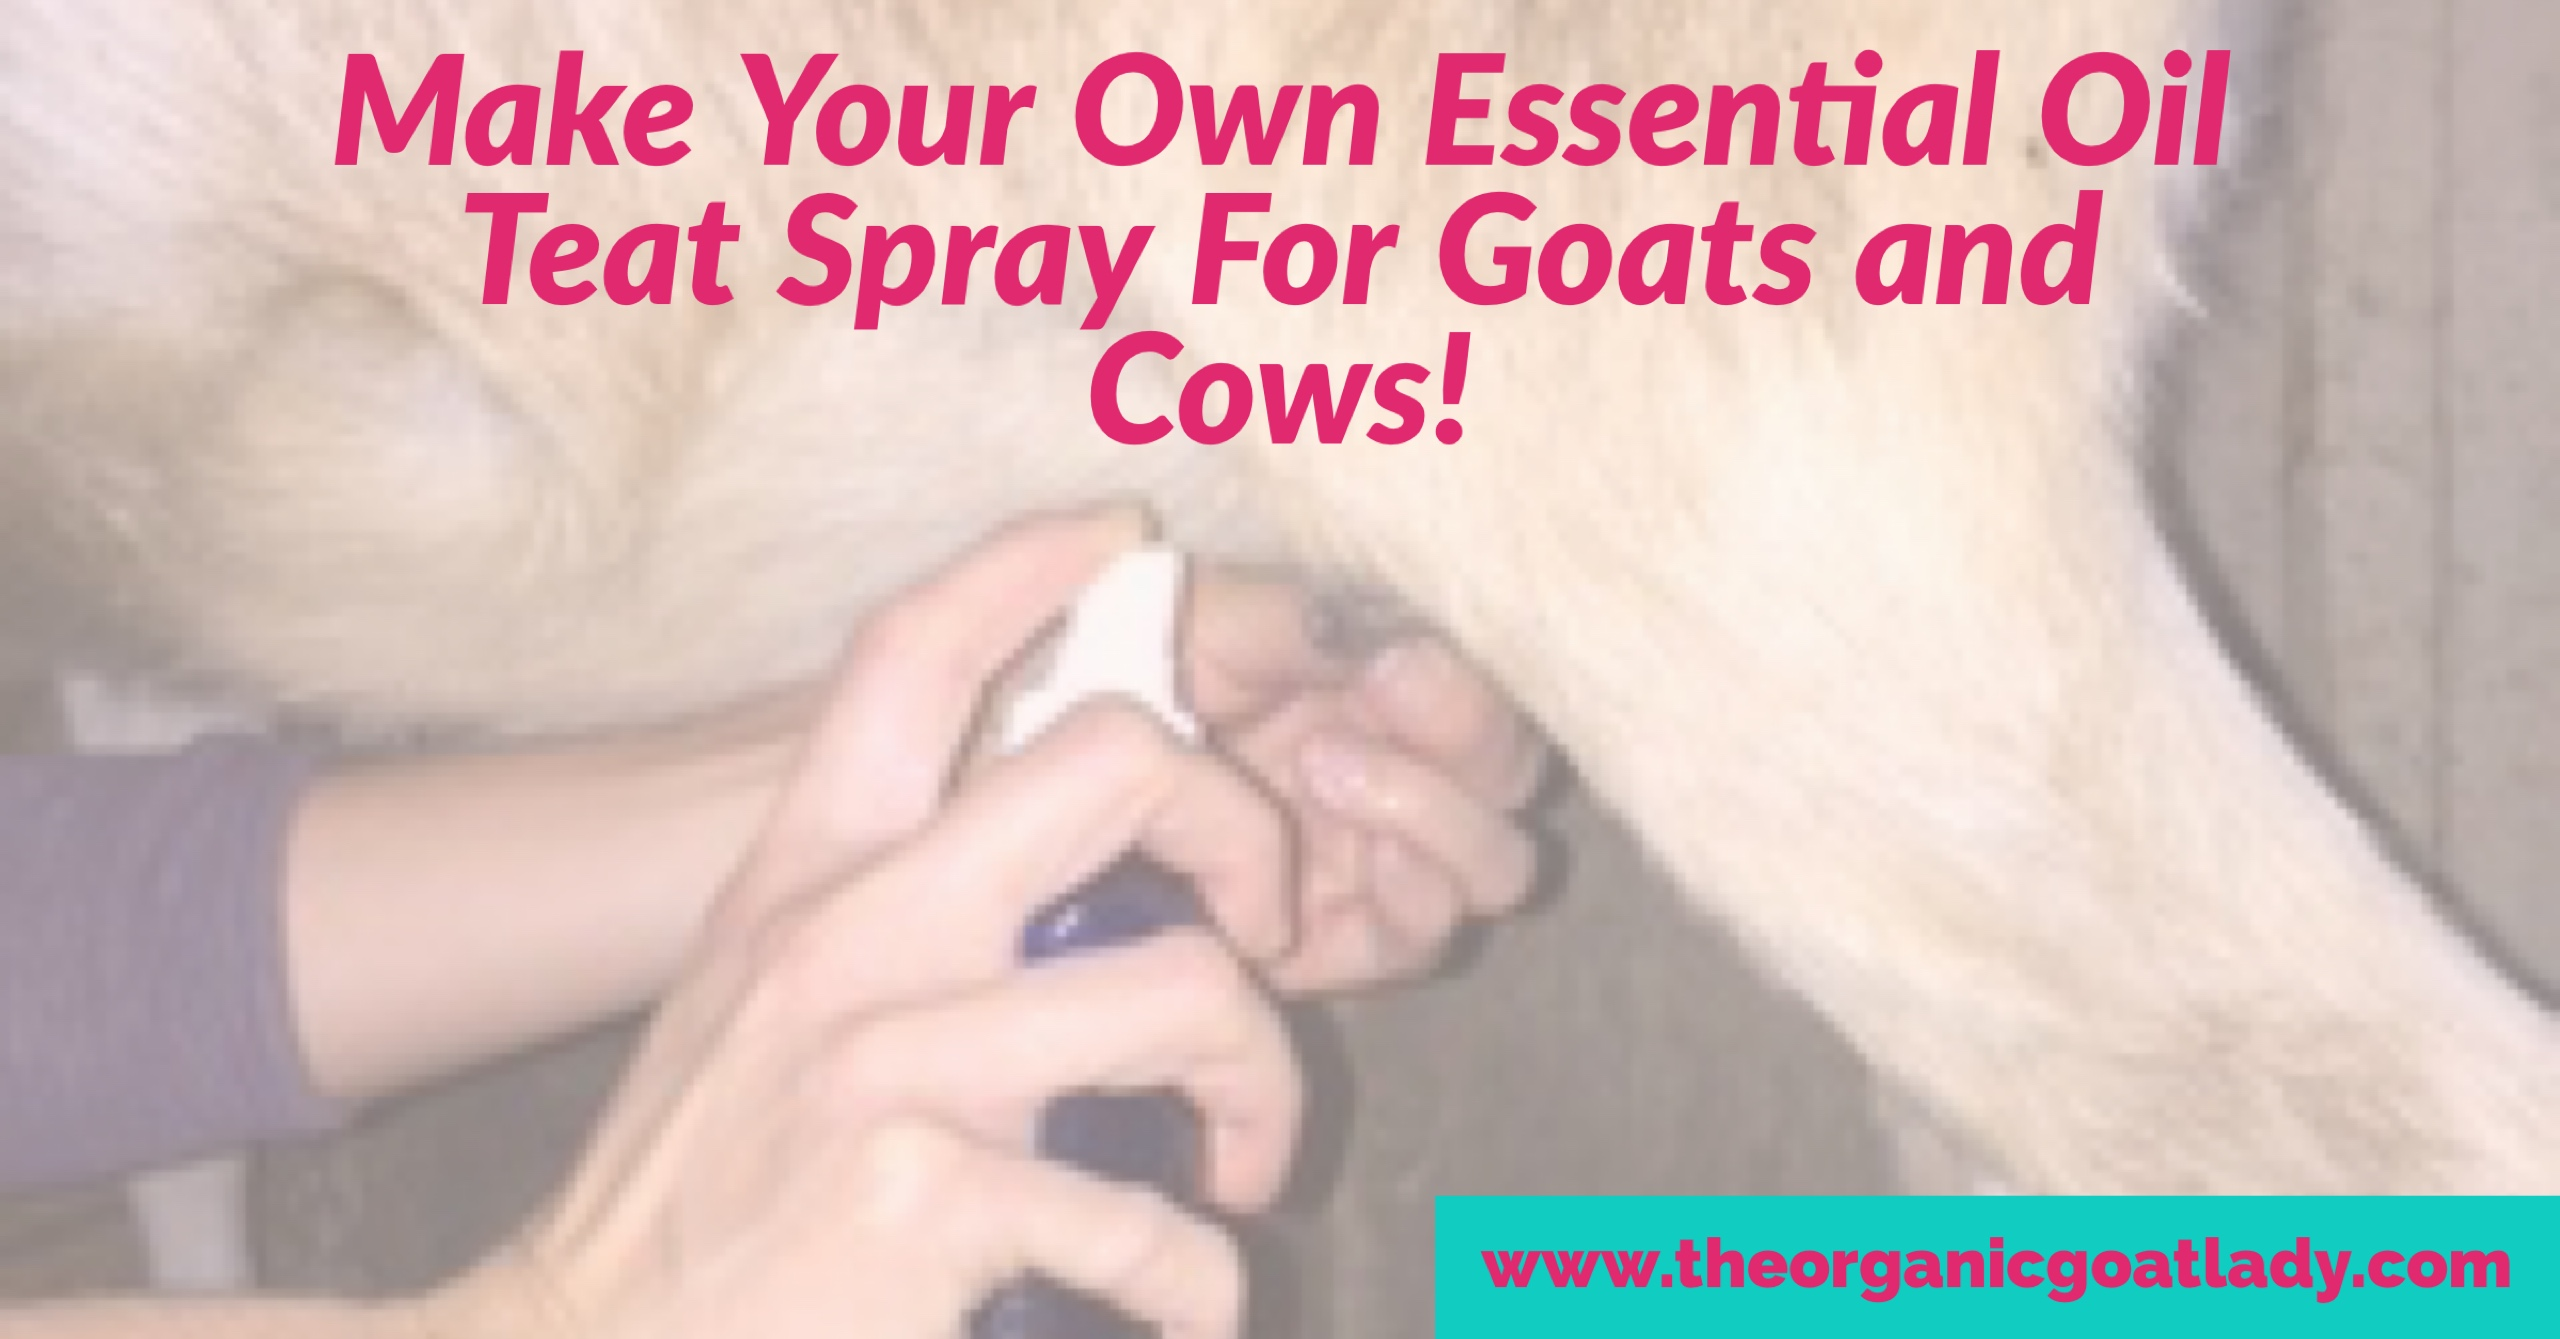 Make Your Own Teat Spray For Goats And Cows!